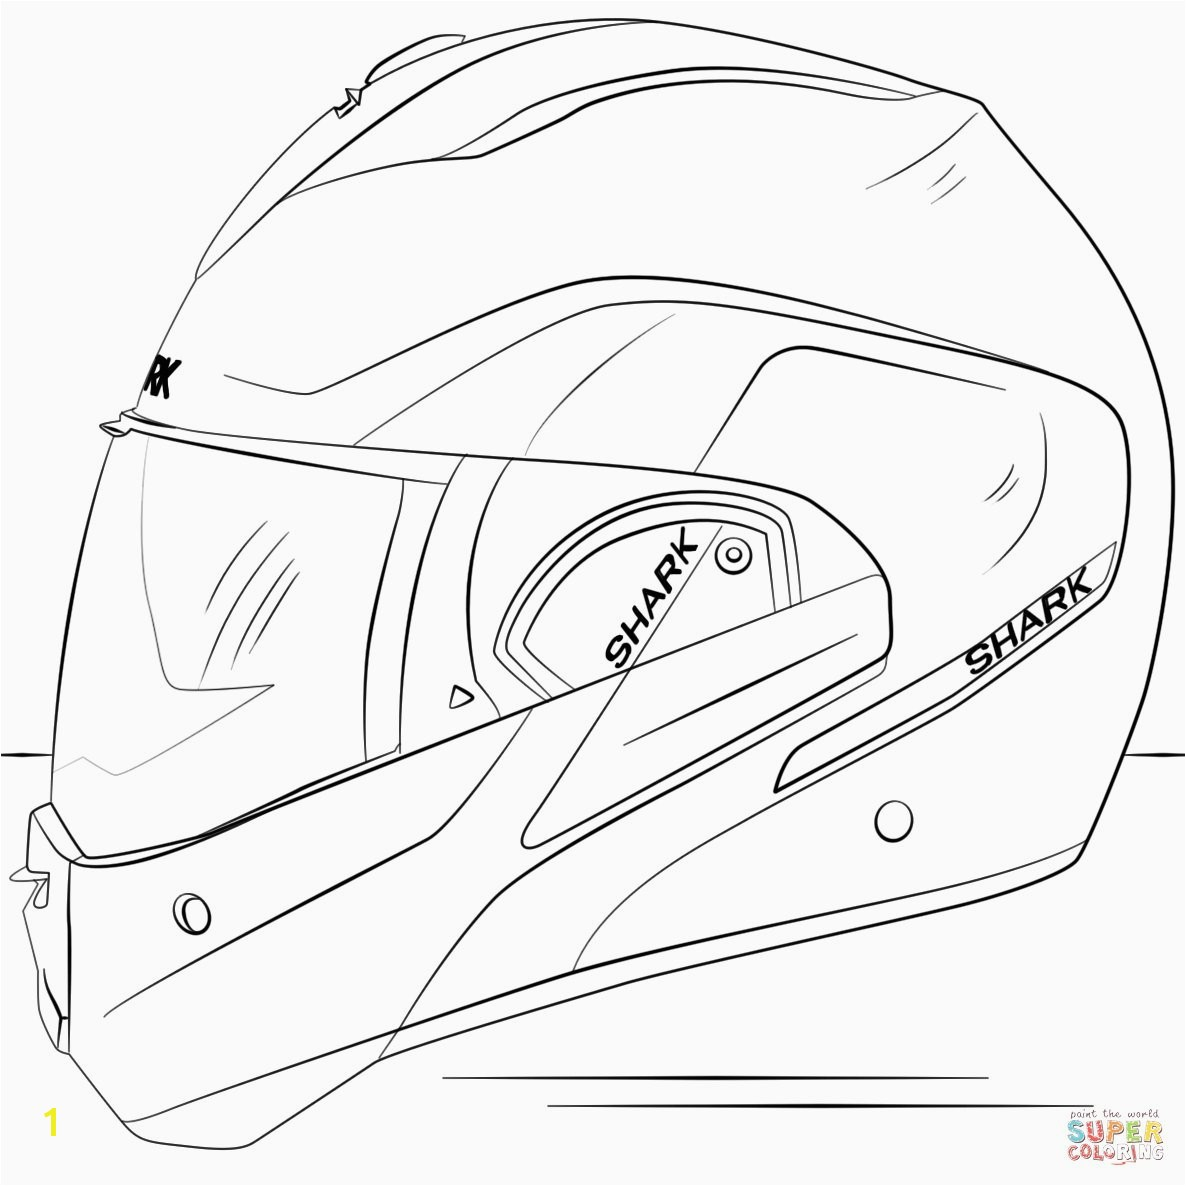 Motorcycle Helmet Coloring Pages Luxury Free Motorcycle Coloring Pages Inspirational Free Bike Helmet Motorcycle Helmet